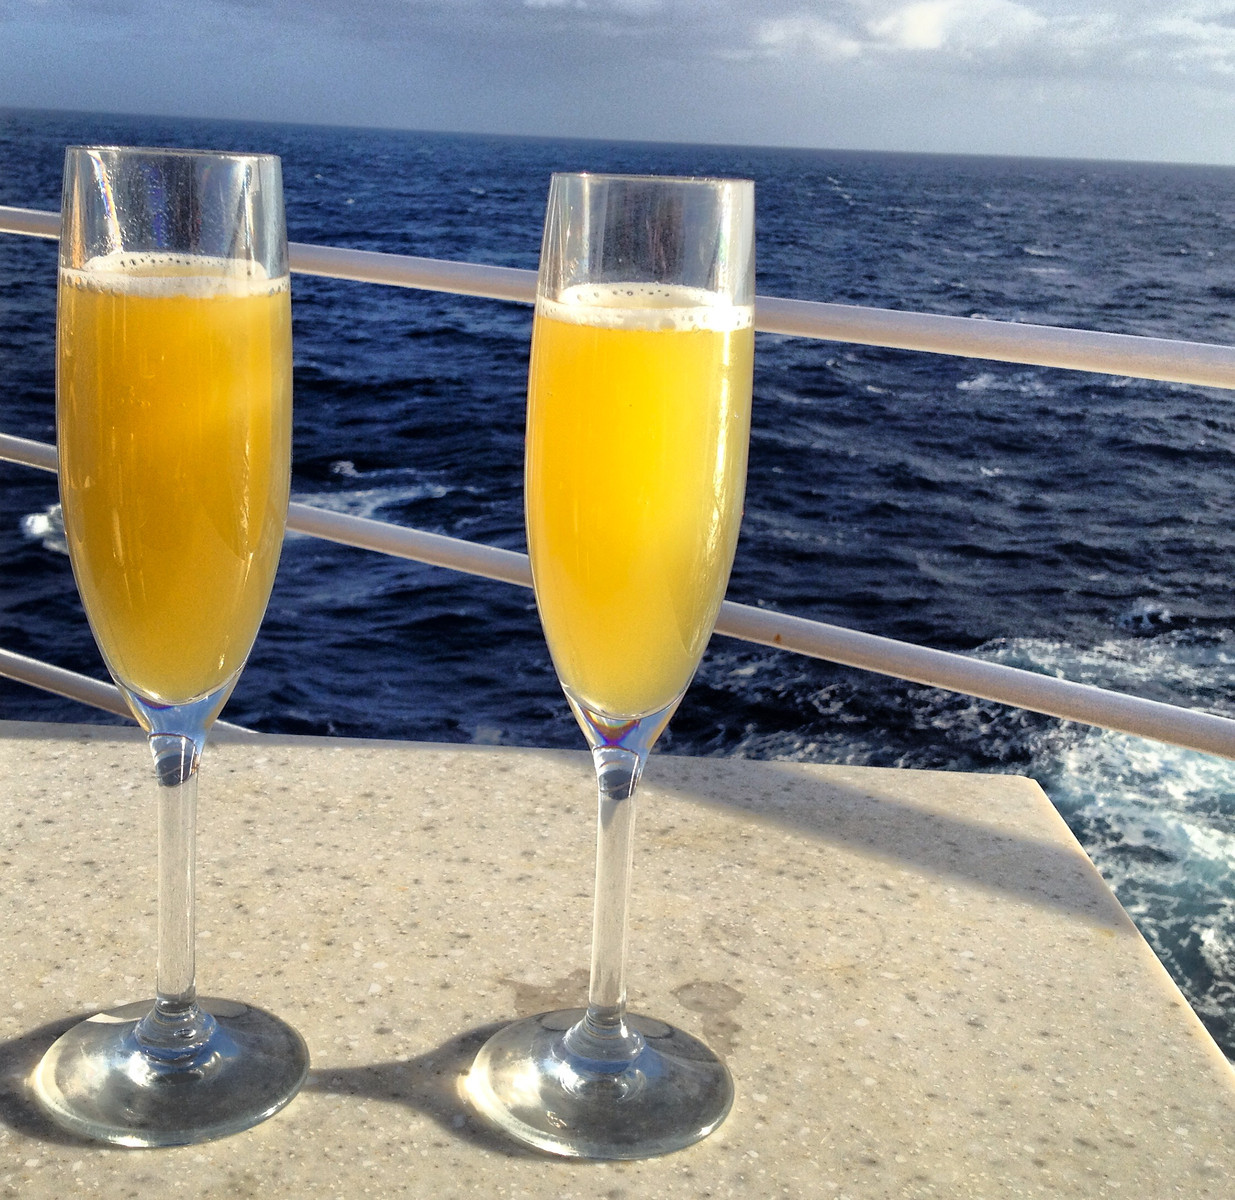 A Transatlantic cruise means relaxing with a Mimosa on the balcony. Read more about this luxury travel experience for baby boomers.